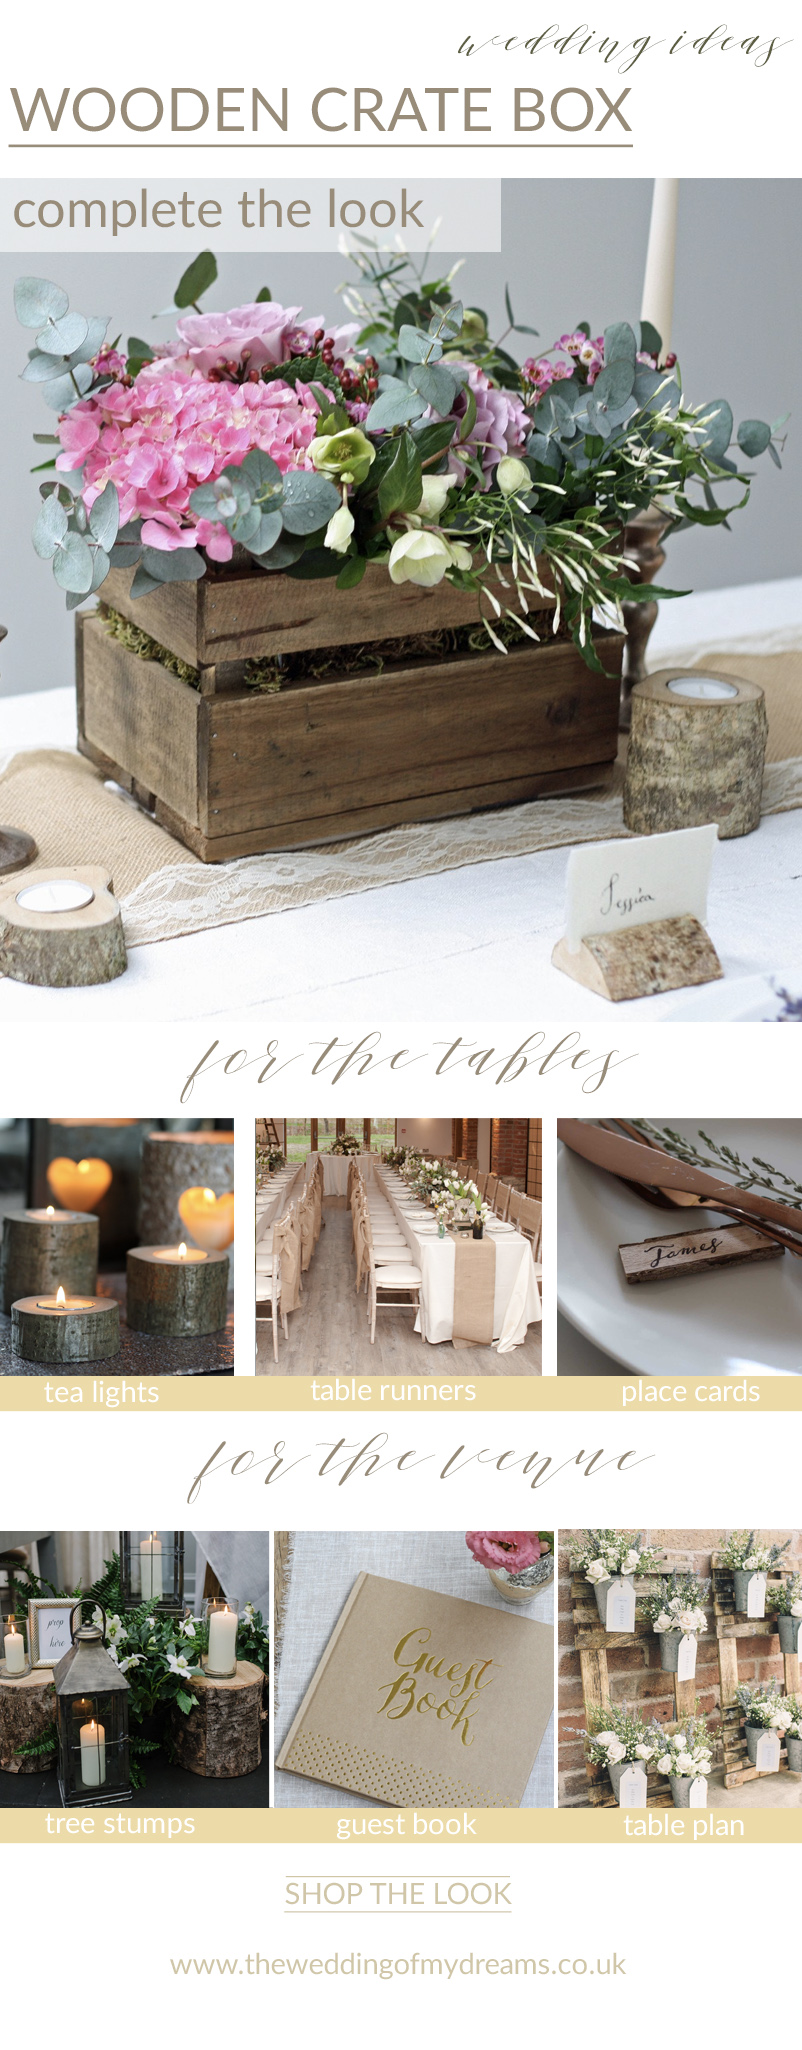 rustic wooden crate centrepieces complete the look rustic woodland wedding ideas